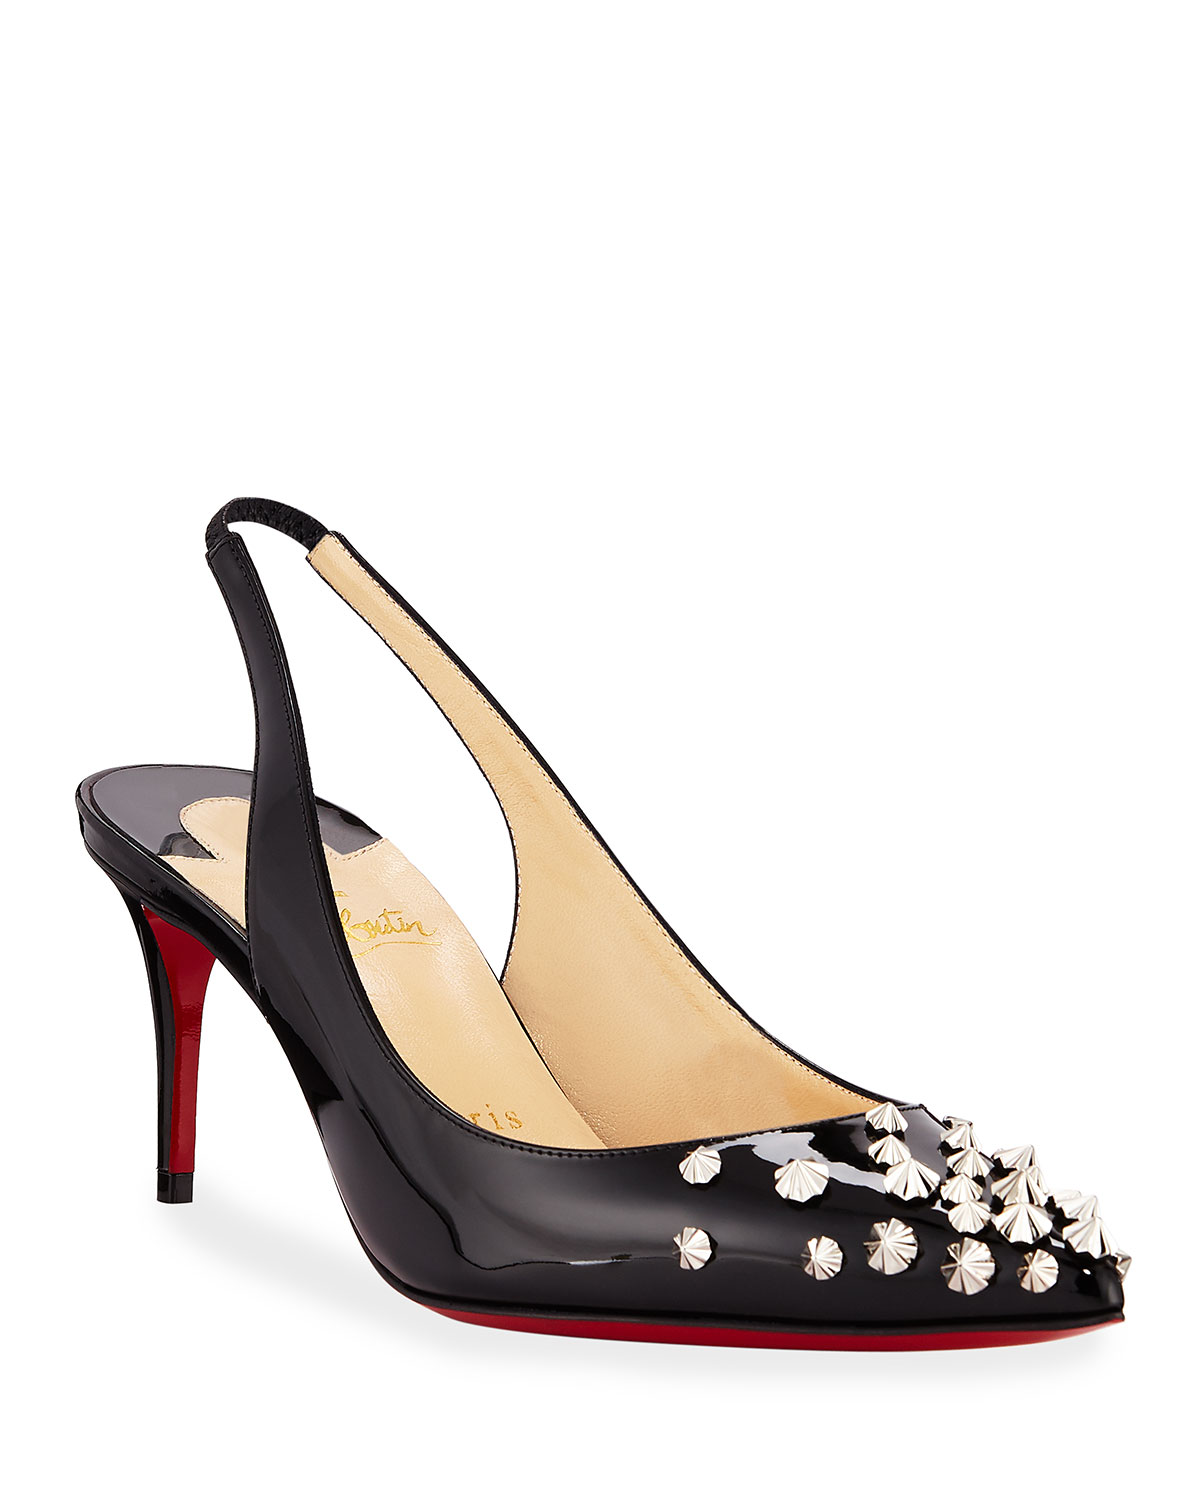 26636587187 Christian Louboutin Drama Spikes 70mm Red Sole Slingback Pumps ...